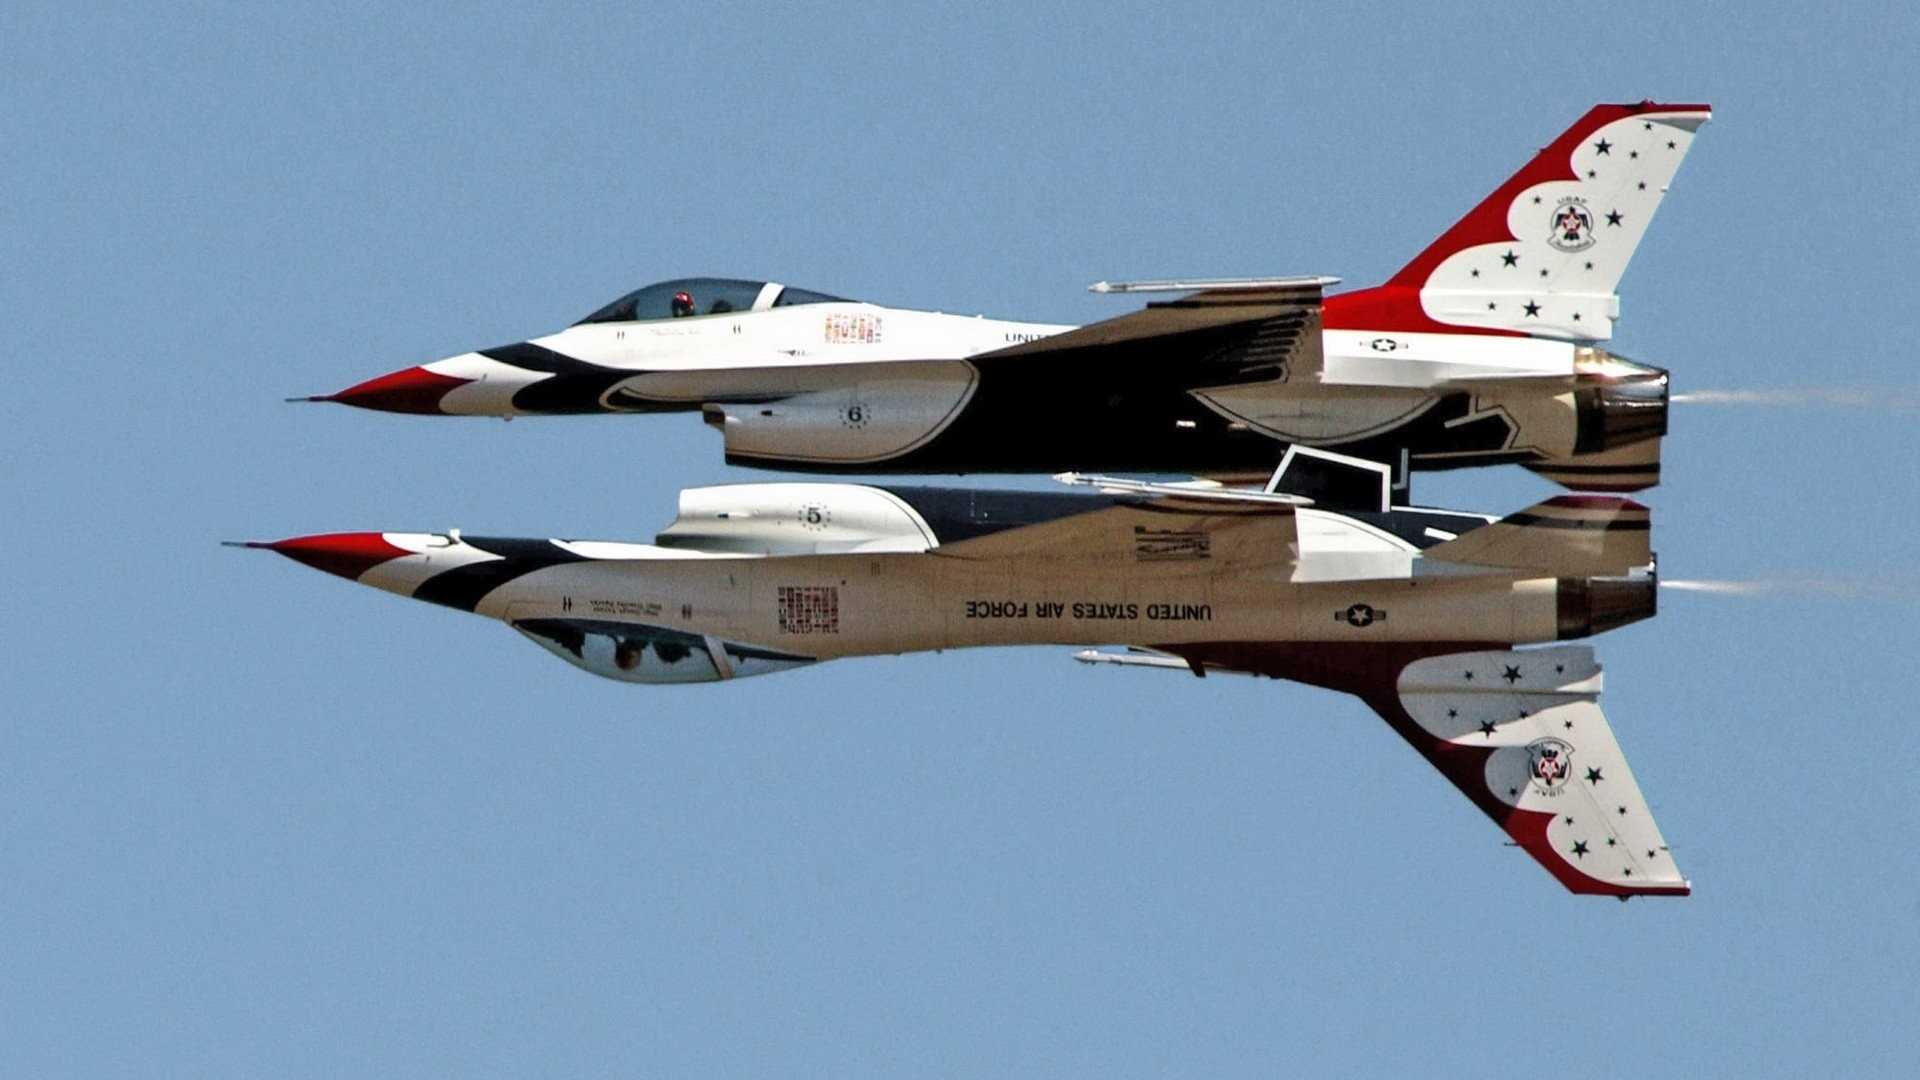 Fighting United States Air Force F-16 Fighting Falcon Thunderbirds  (squadron) wallpaper | | 289361 | WallpaperUP